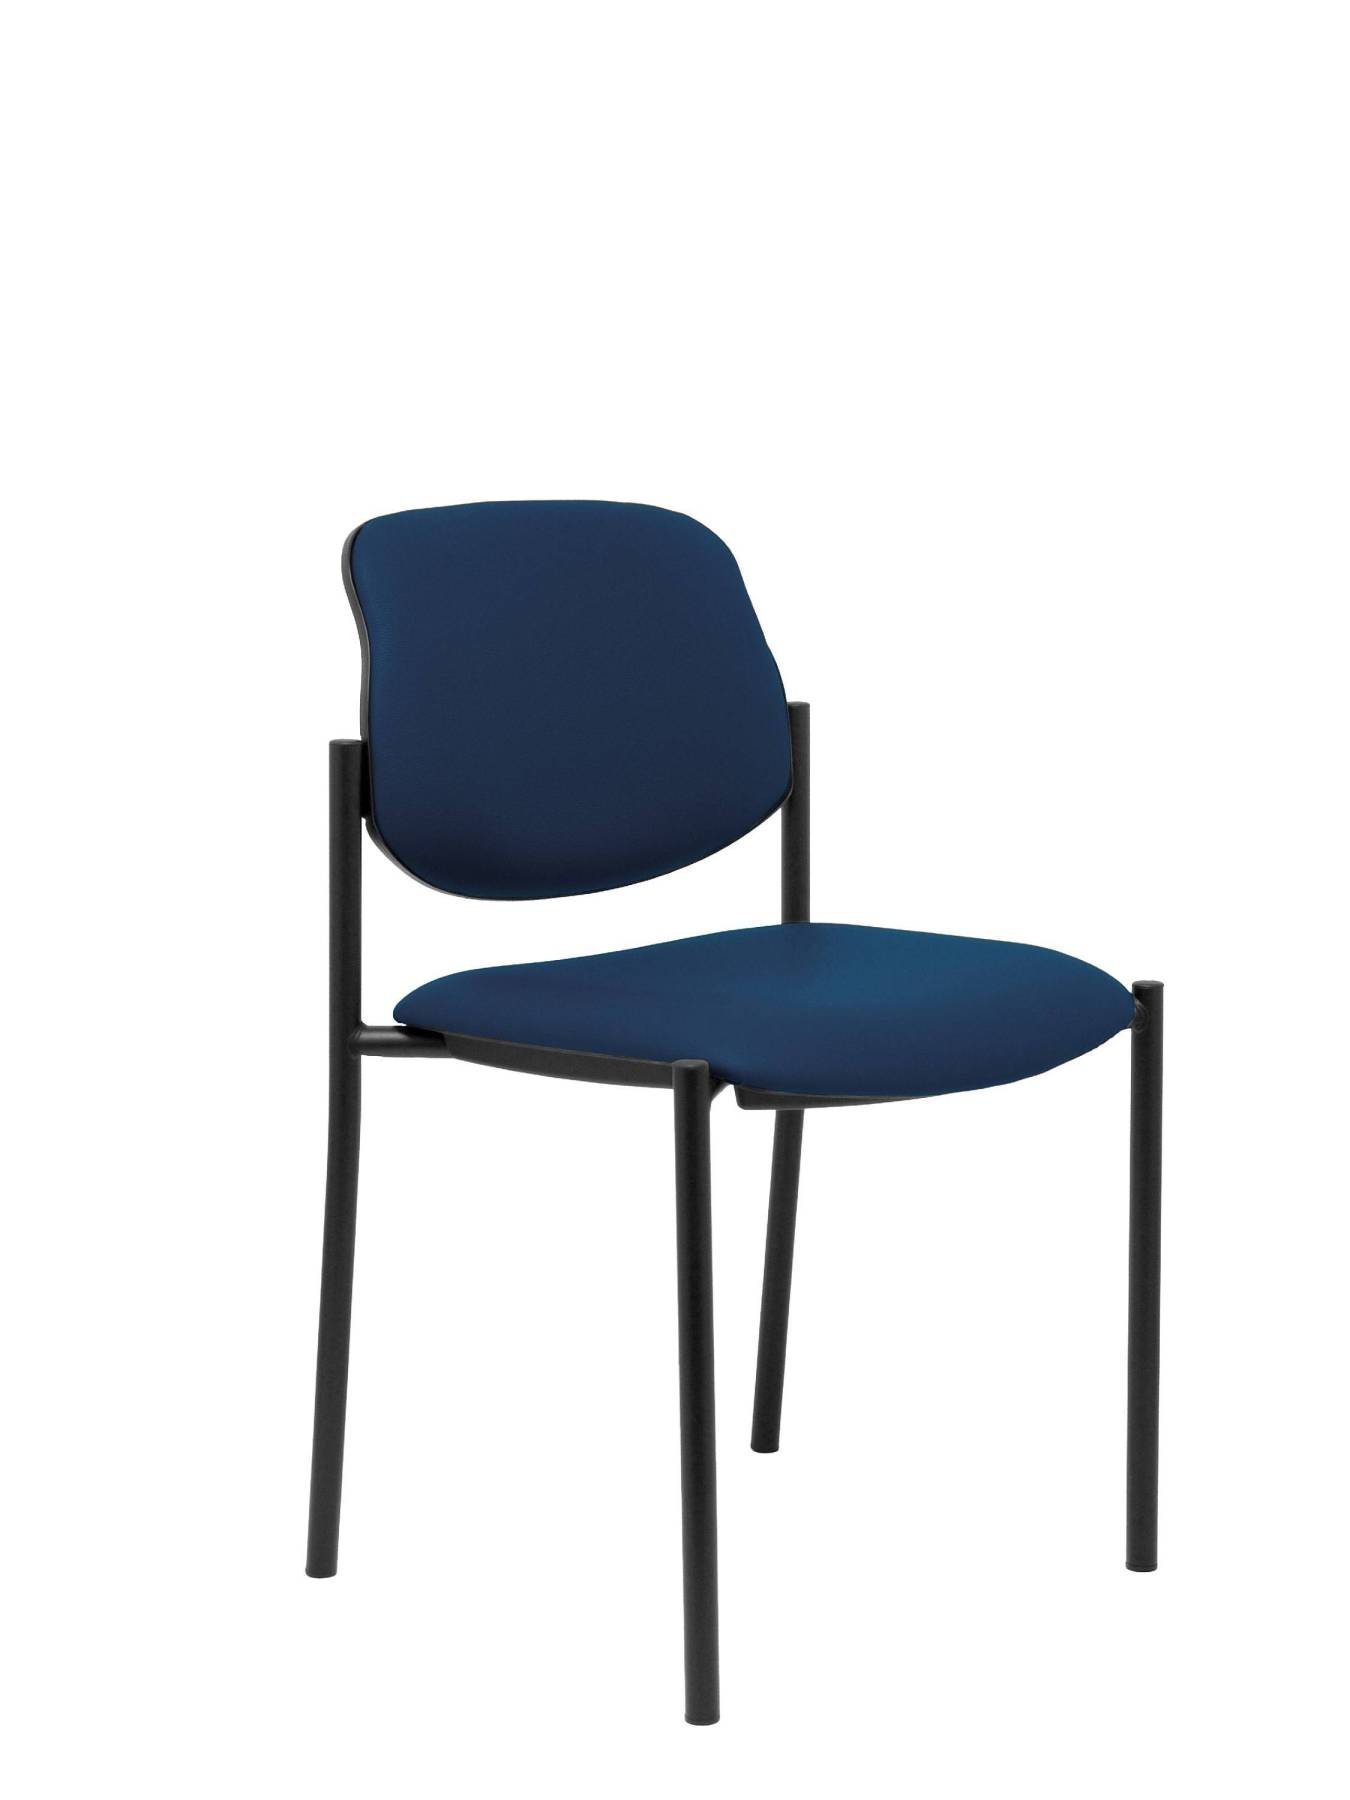 Visitor Chair 4's Topsy And Estructrua Negro-up Seat And Backstop Upholstered In Tissue Similpiel Navy Blue Color PIQU